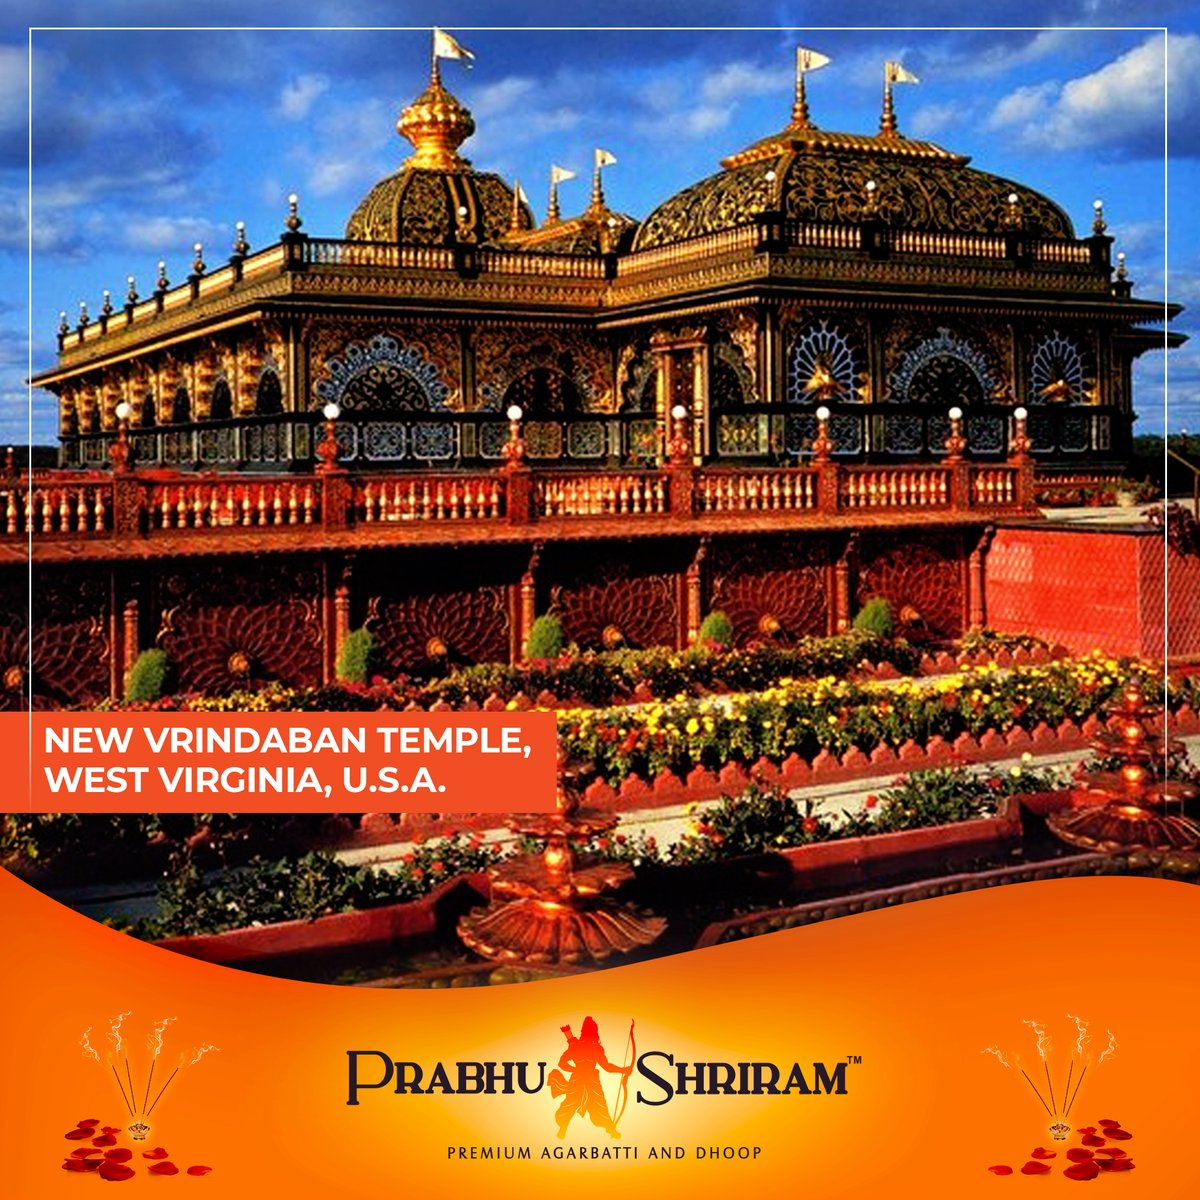 New Vrindaban temple is part of the ISKCON International Community of West Virginia.  #PrabhuShriRamAgarbattiAndDhoop #PrabhuShriRam #Agarbatti #PrabhuShriRamPremiumAgarbatti #AgarbattiAndDhoop #NaturalFragrance #Spiritual #makeinindia #ForeignHinduTemple #VrindabanTemple